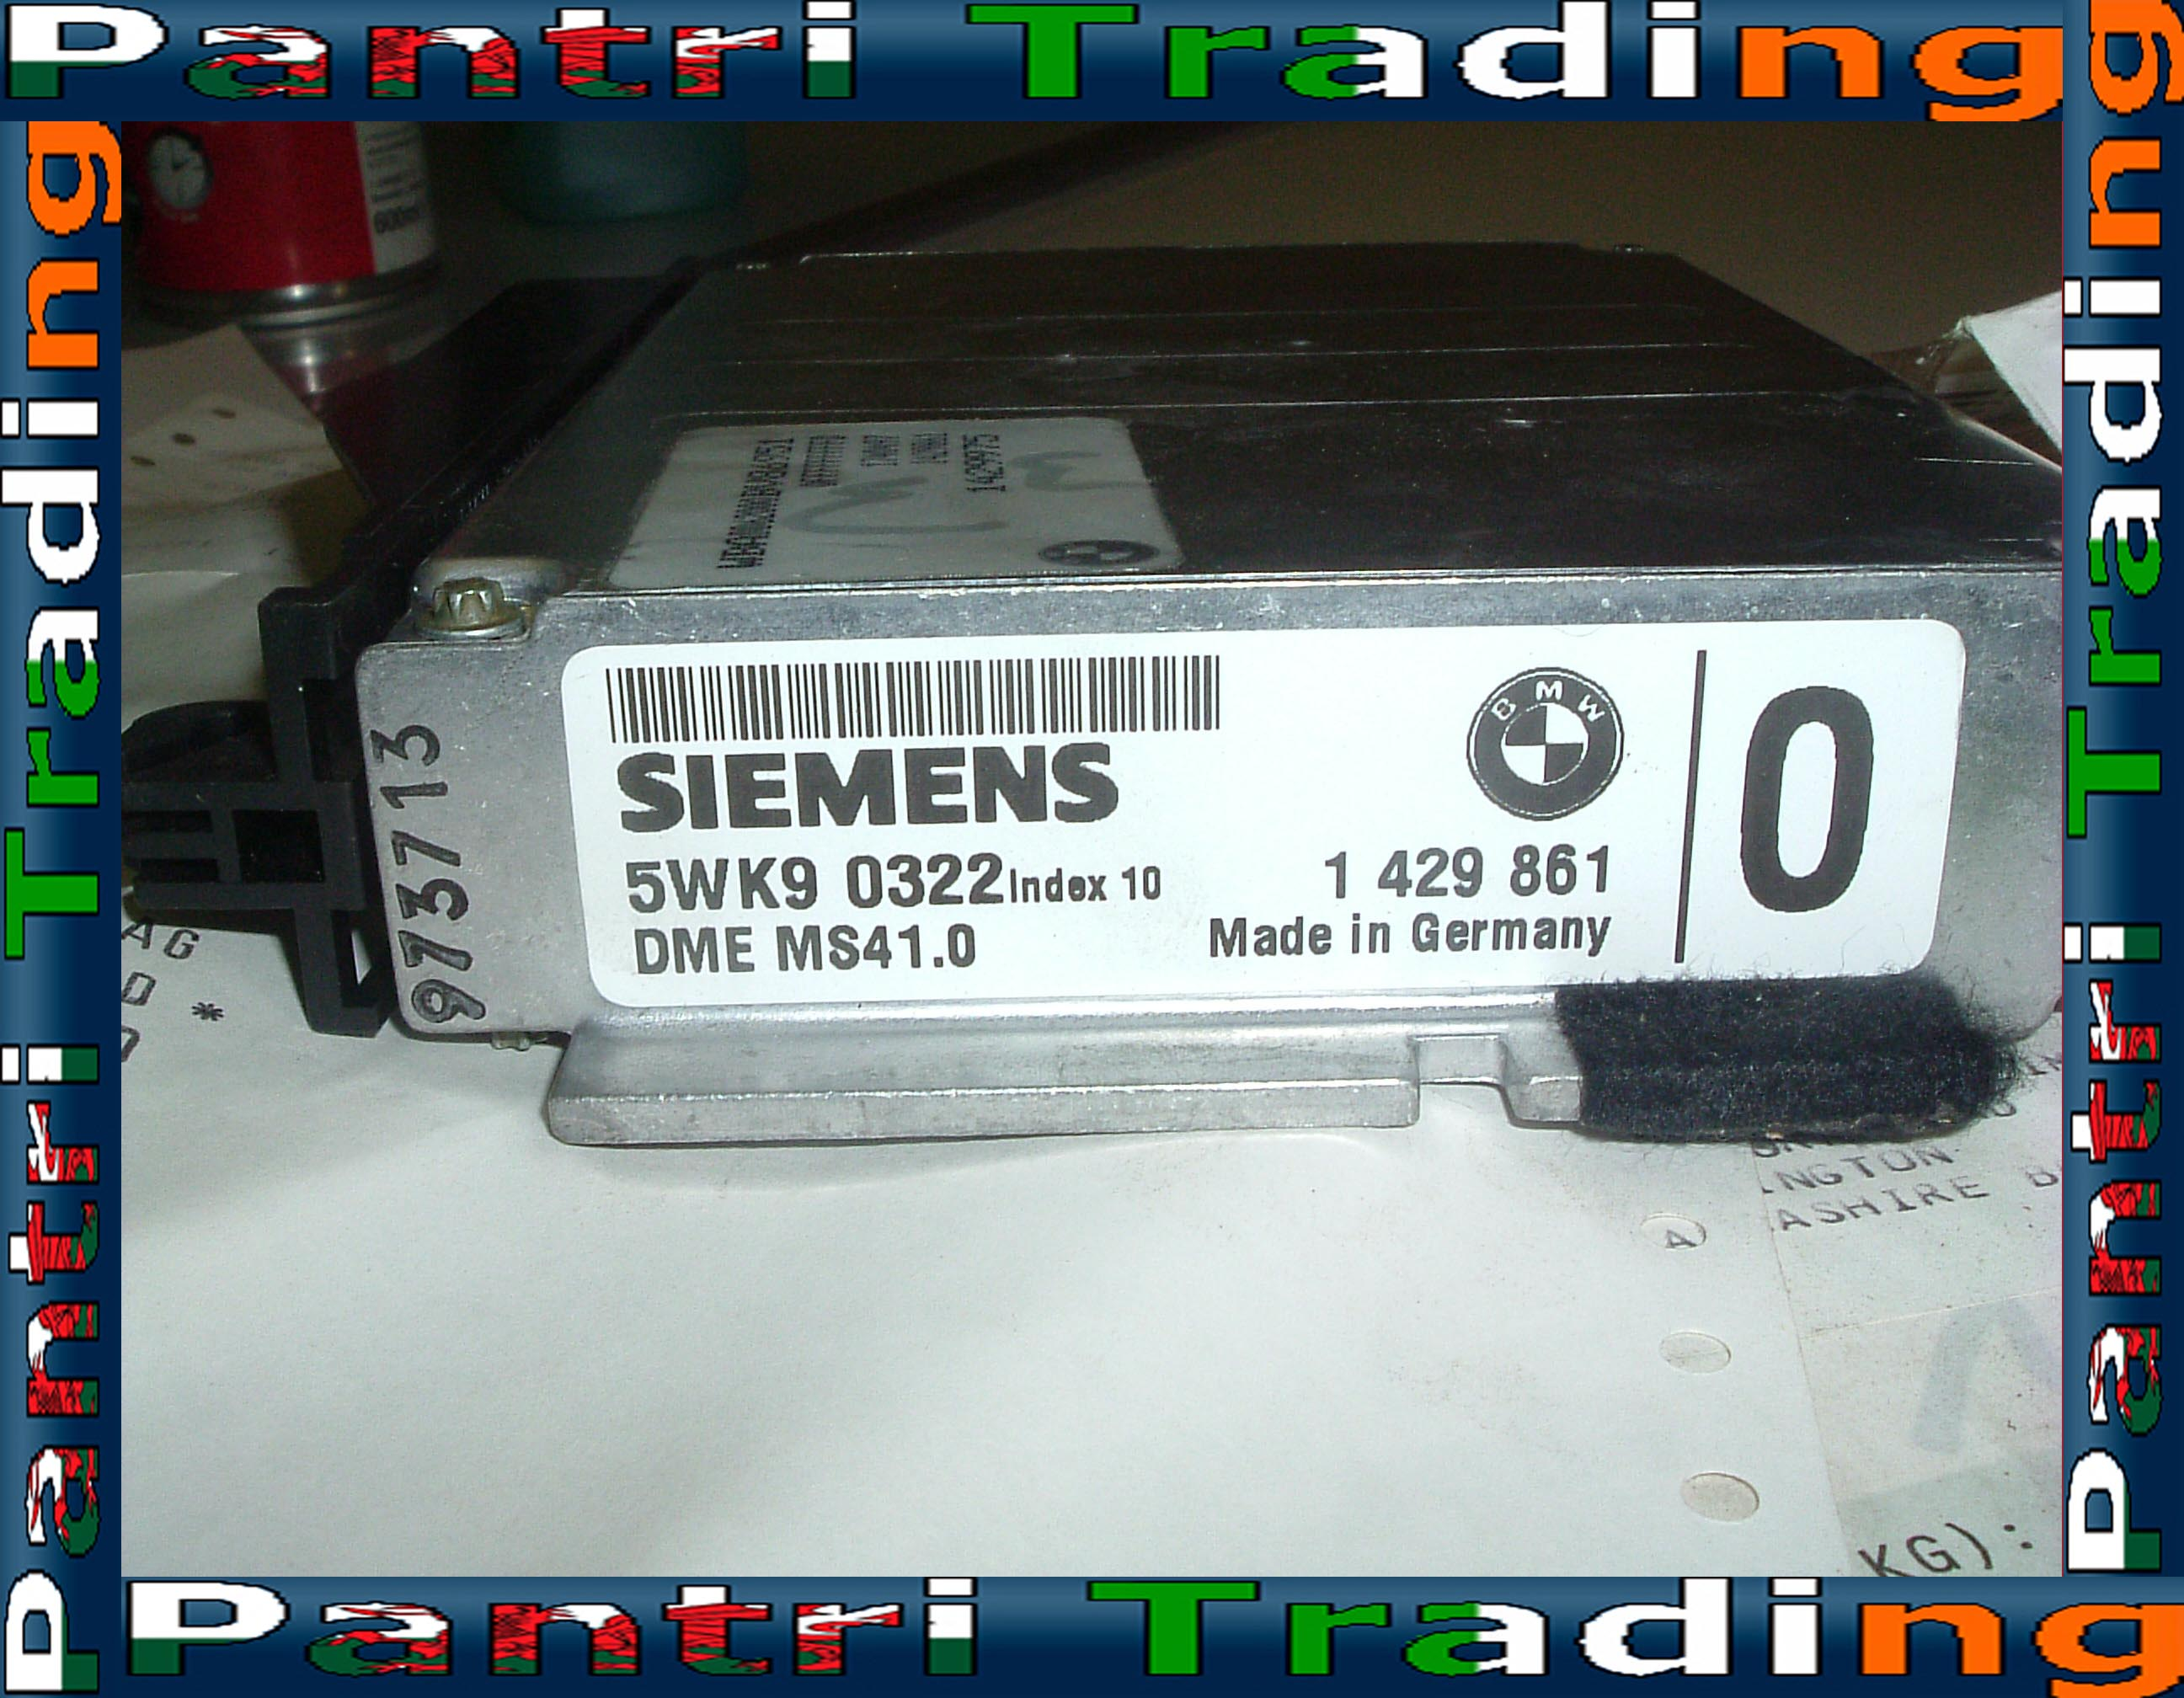 bmw m50 ecu wiring diagram audiobahn aw1251t m52 engine dme control unit module 1429861 ebay